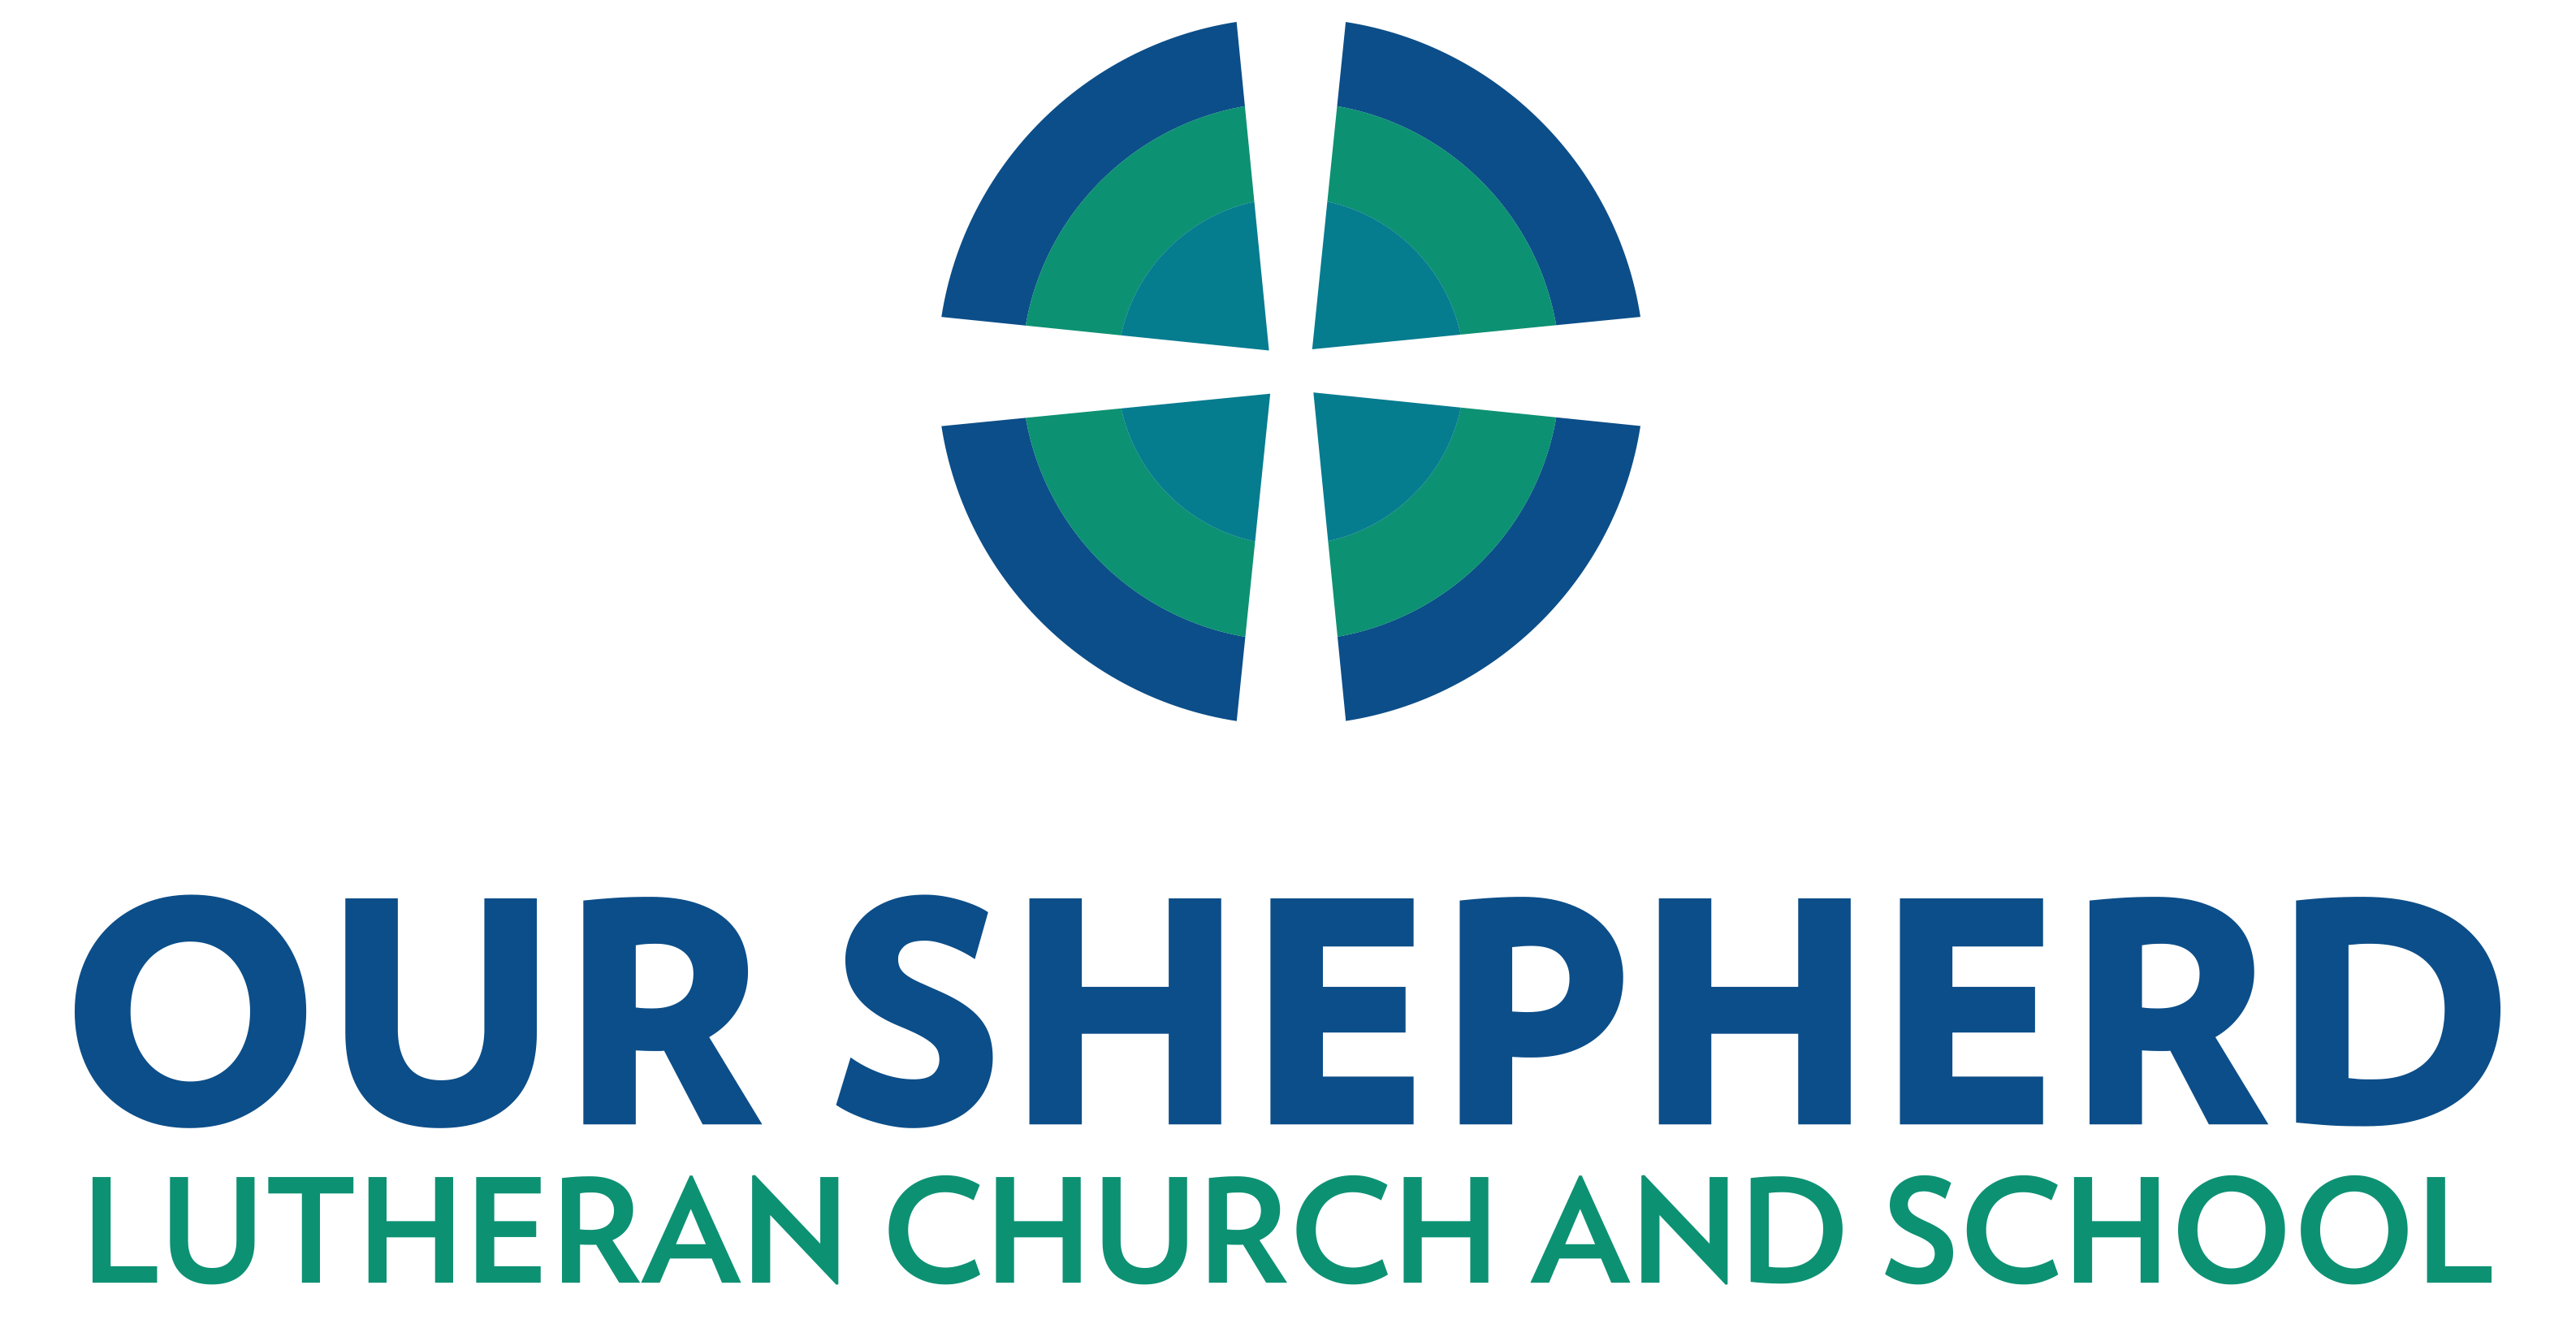 Our Shepherd Lutheran Church & School